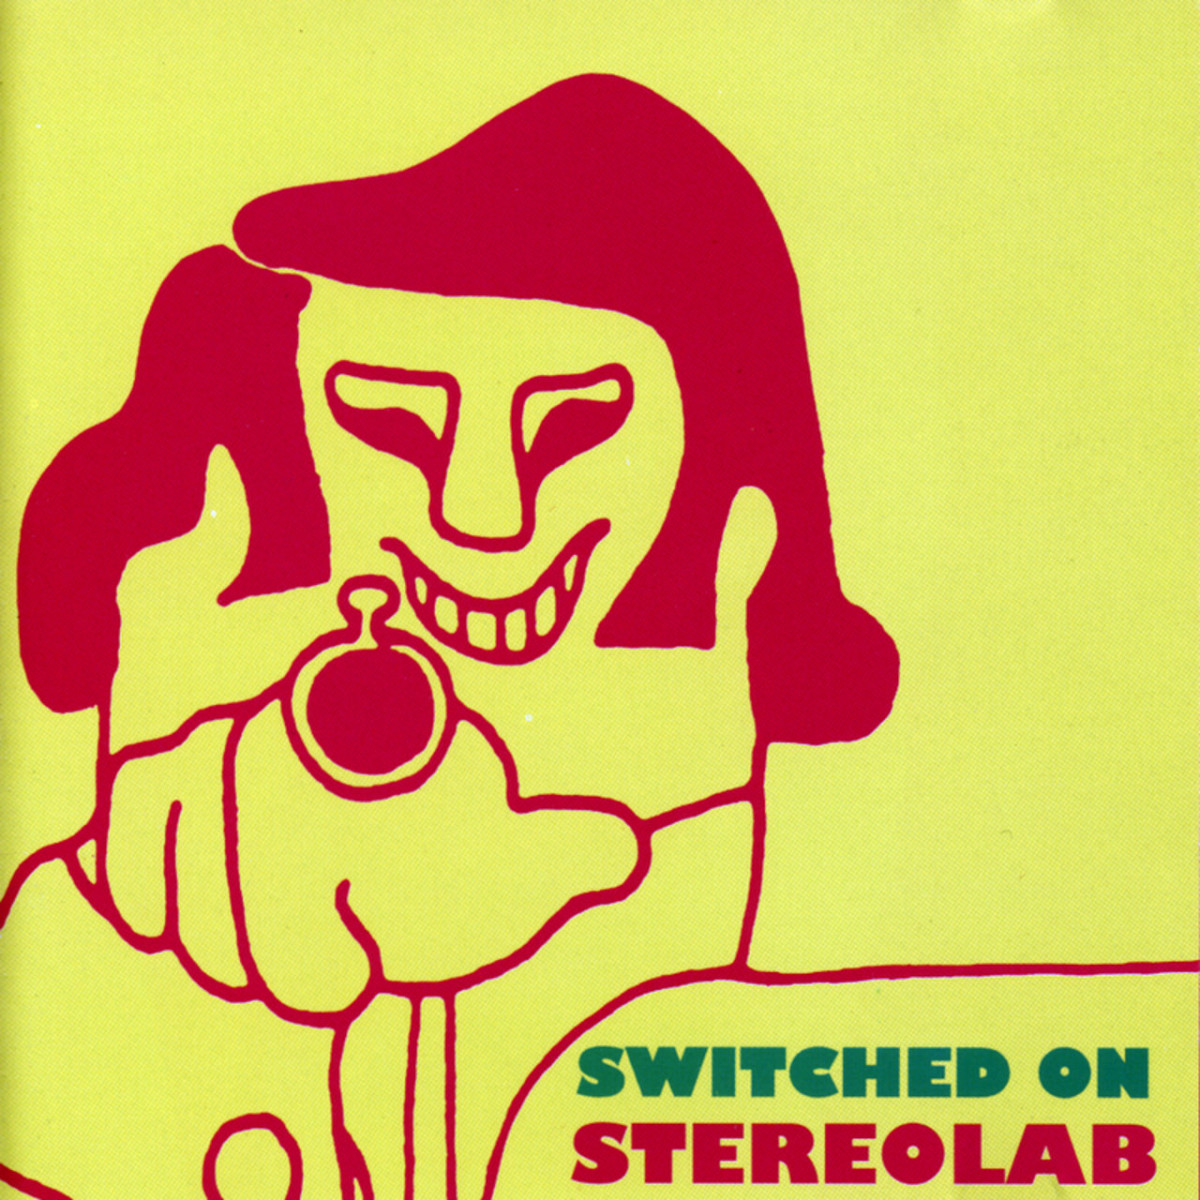 Stereolab Switched On reissue vinyl